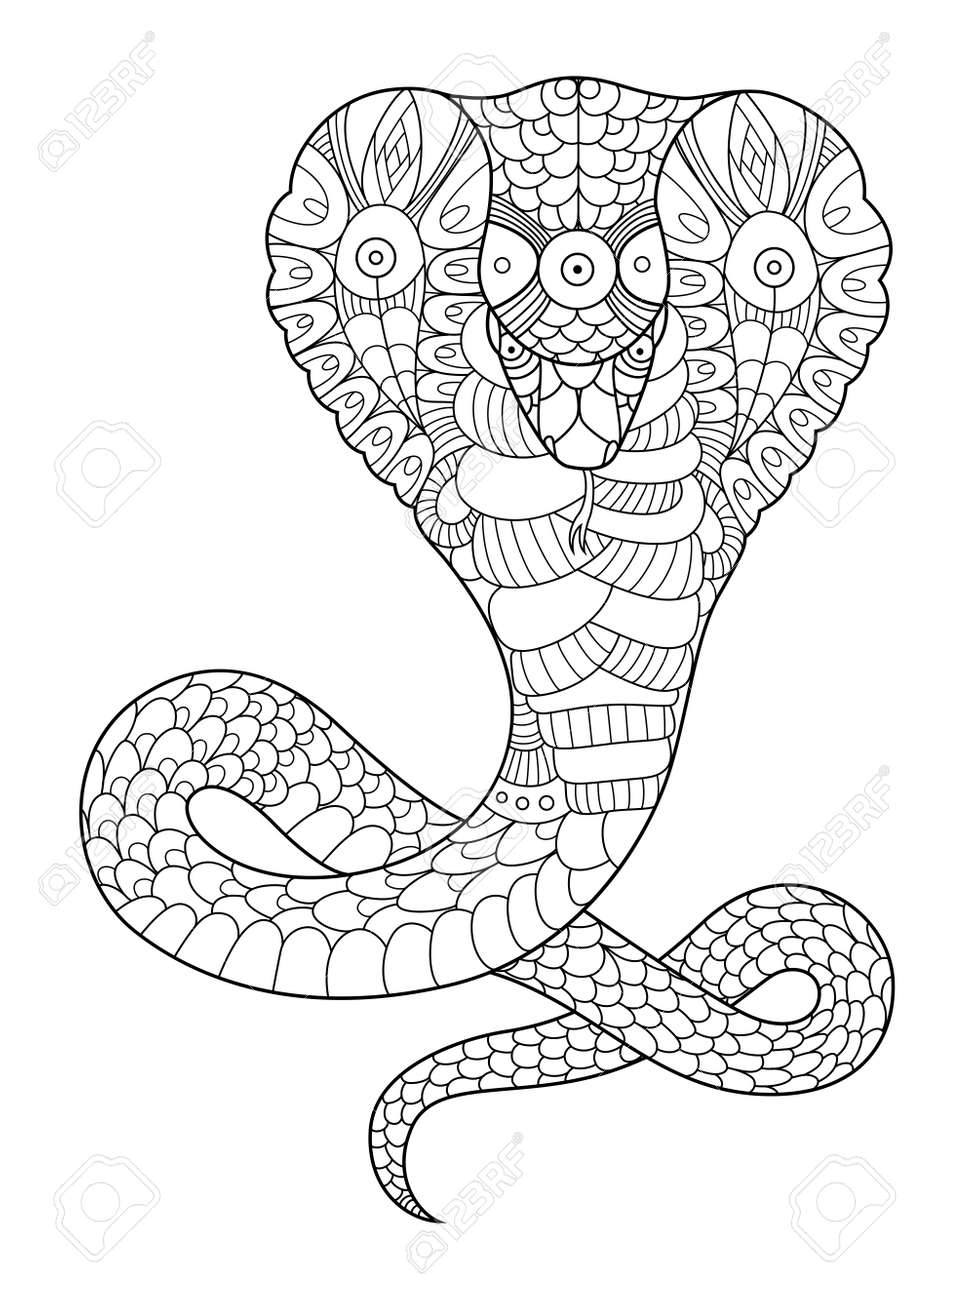 Cobra Snake Coloring Book For Adults Vector Illustration. Anti ...